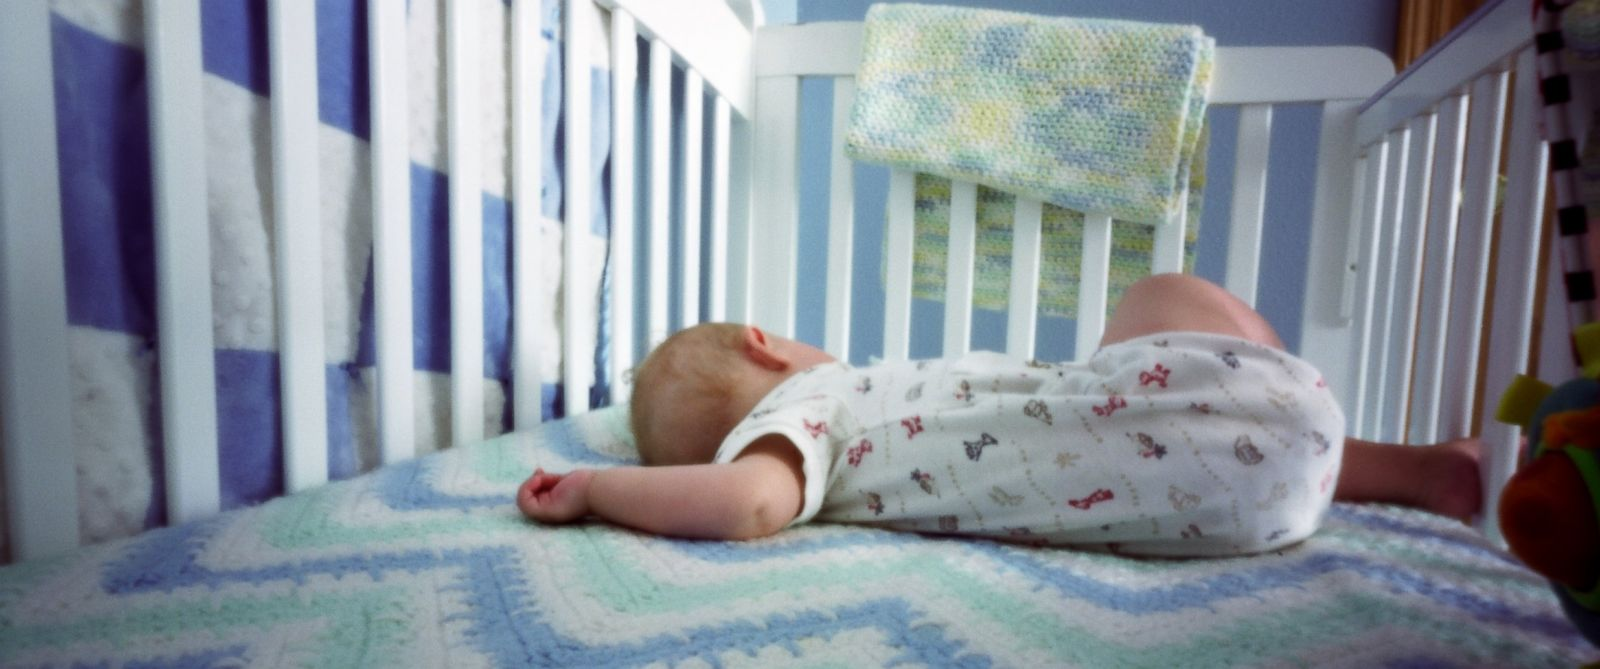 PHOTO: A baby sleeps in a crib.